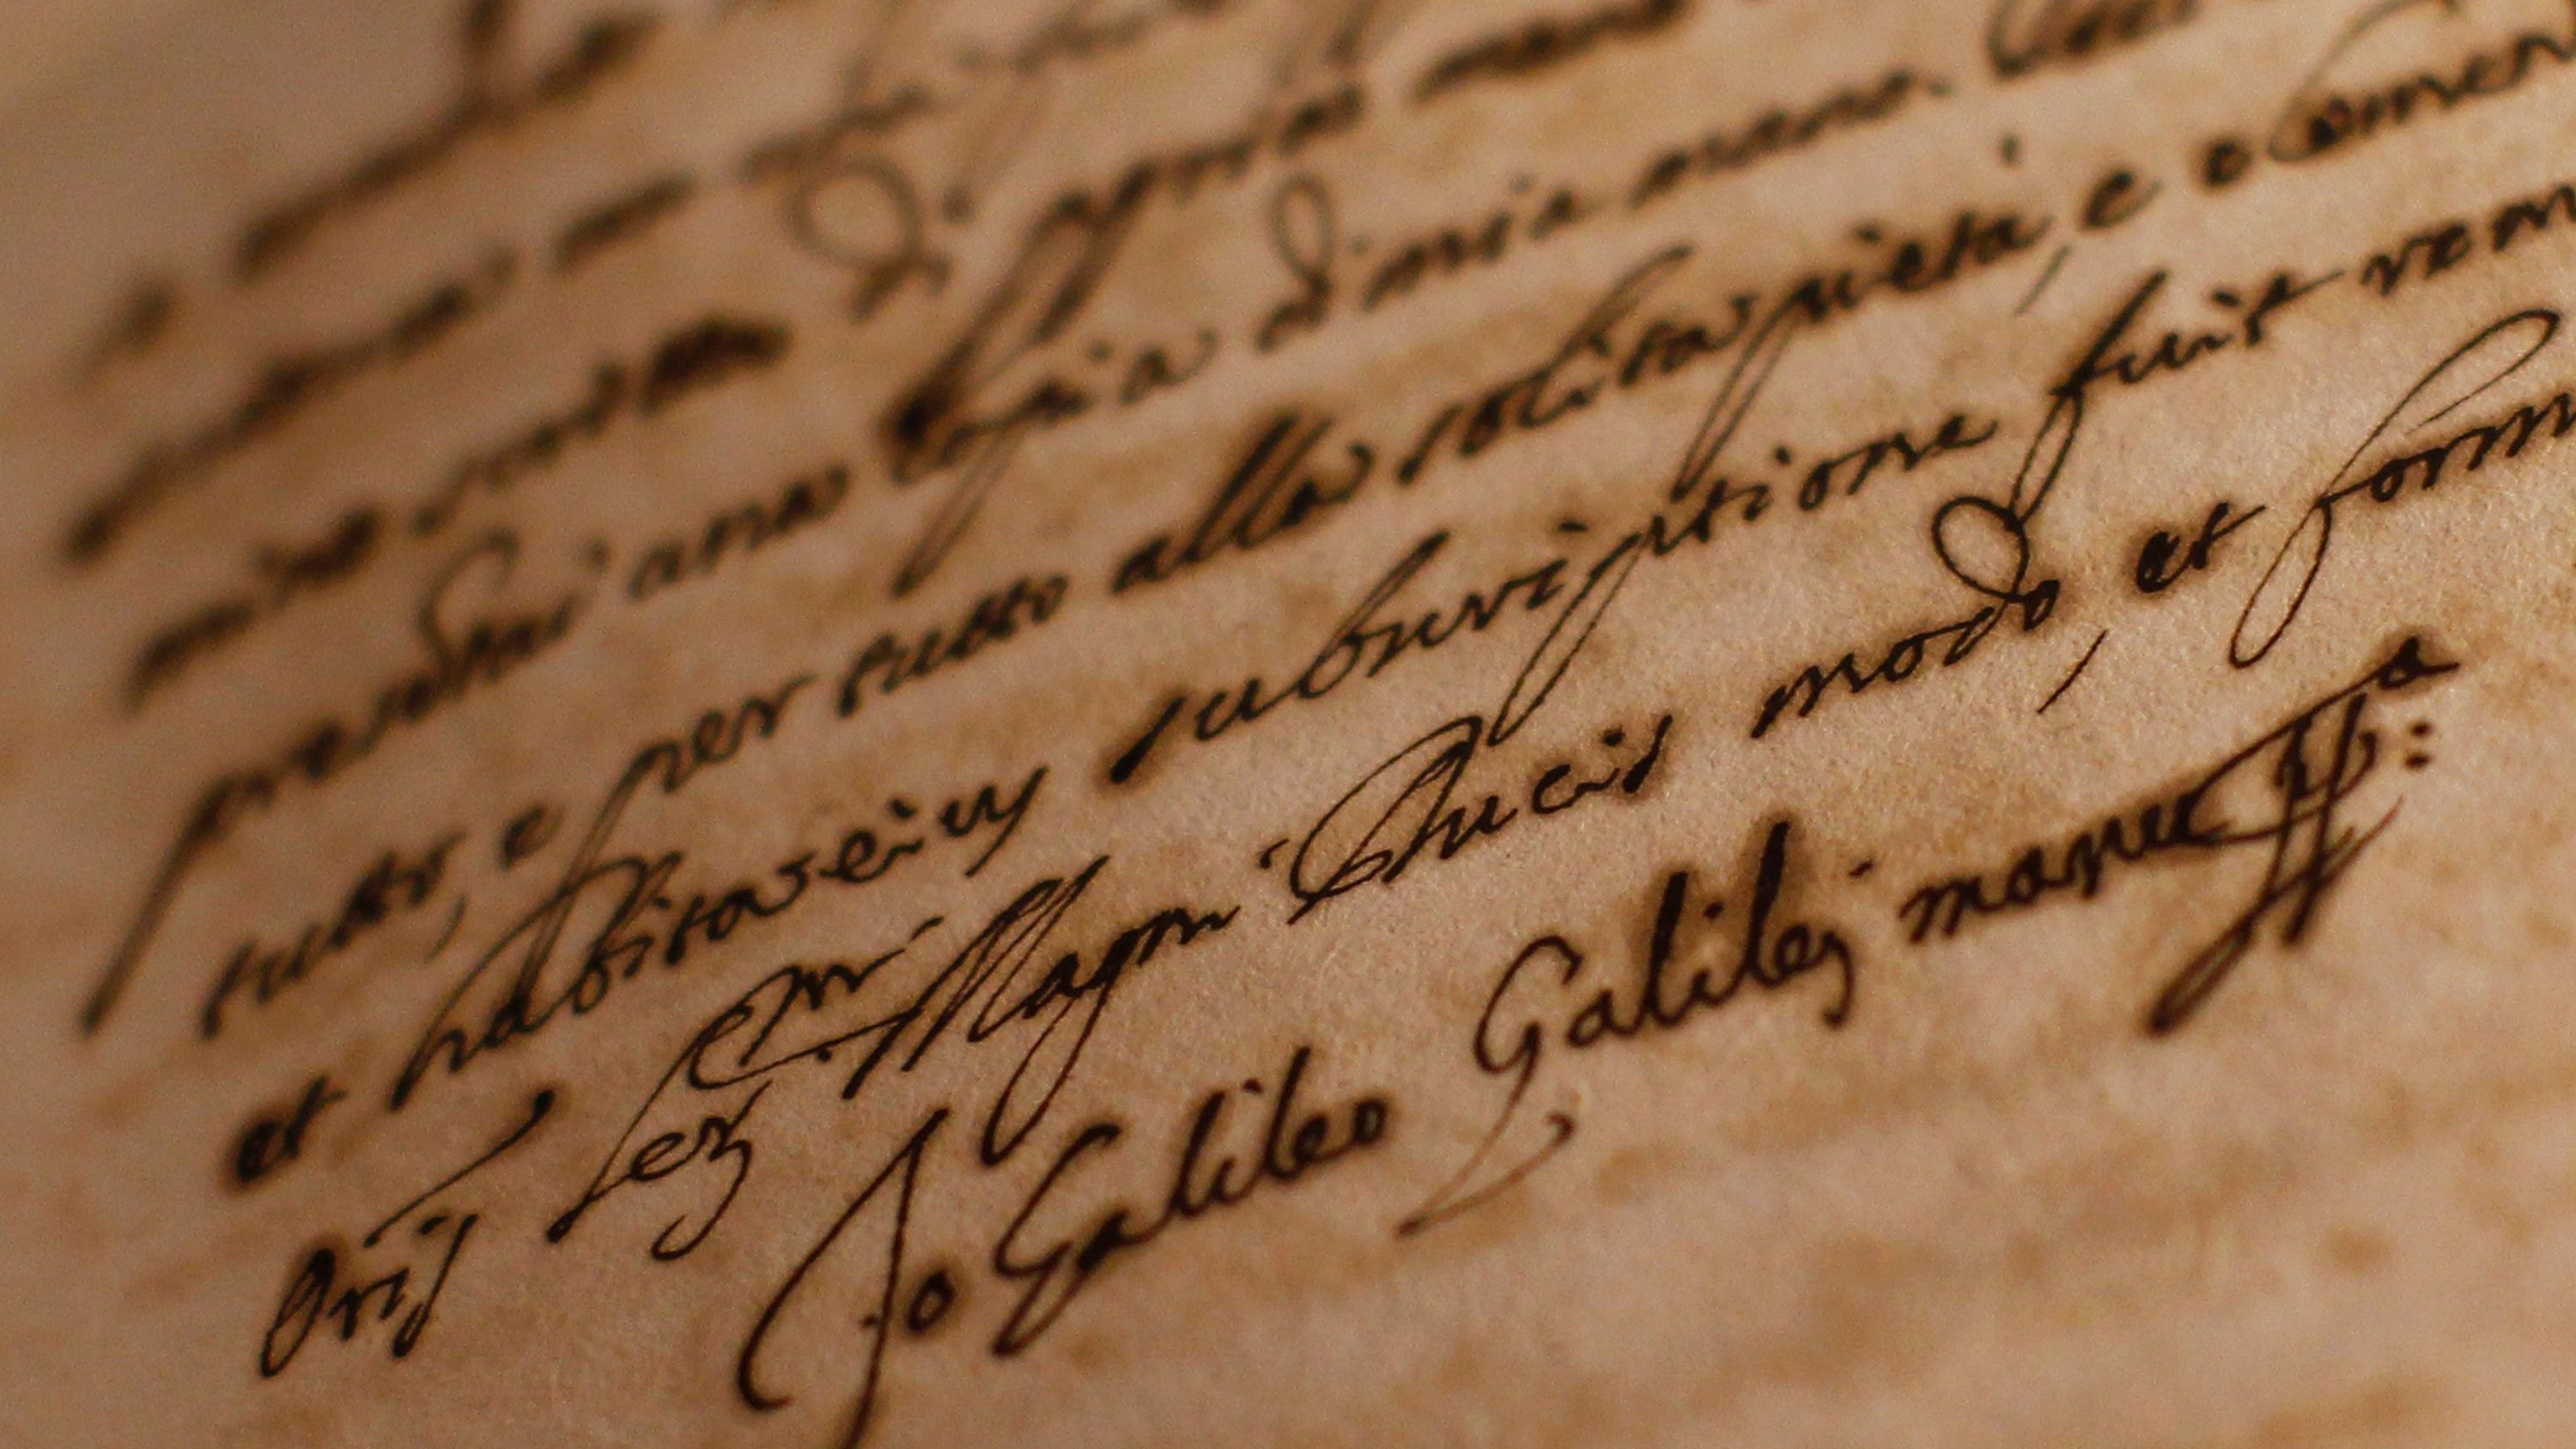 Galileo's newly discovered letter shows his clever attempt to outsmart the Catholic Church